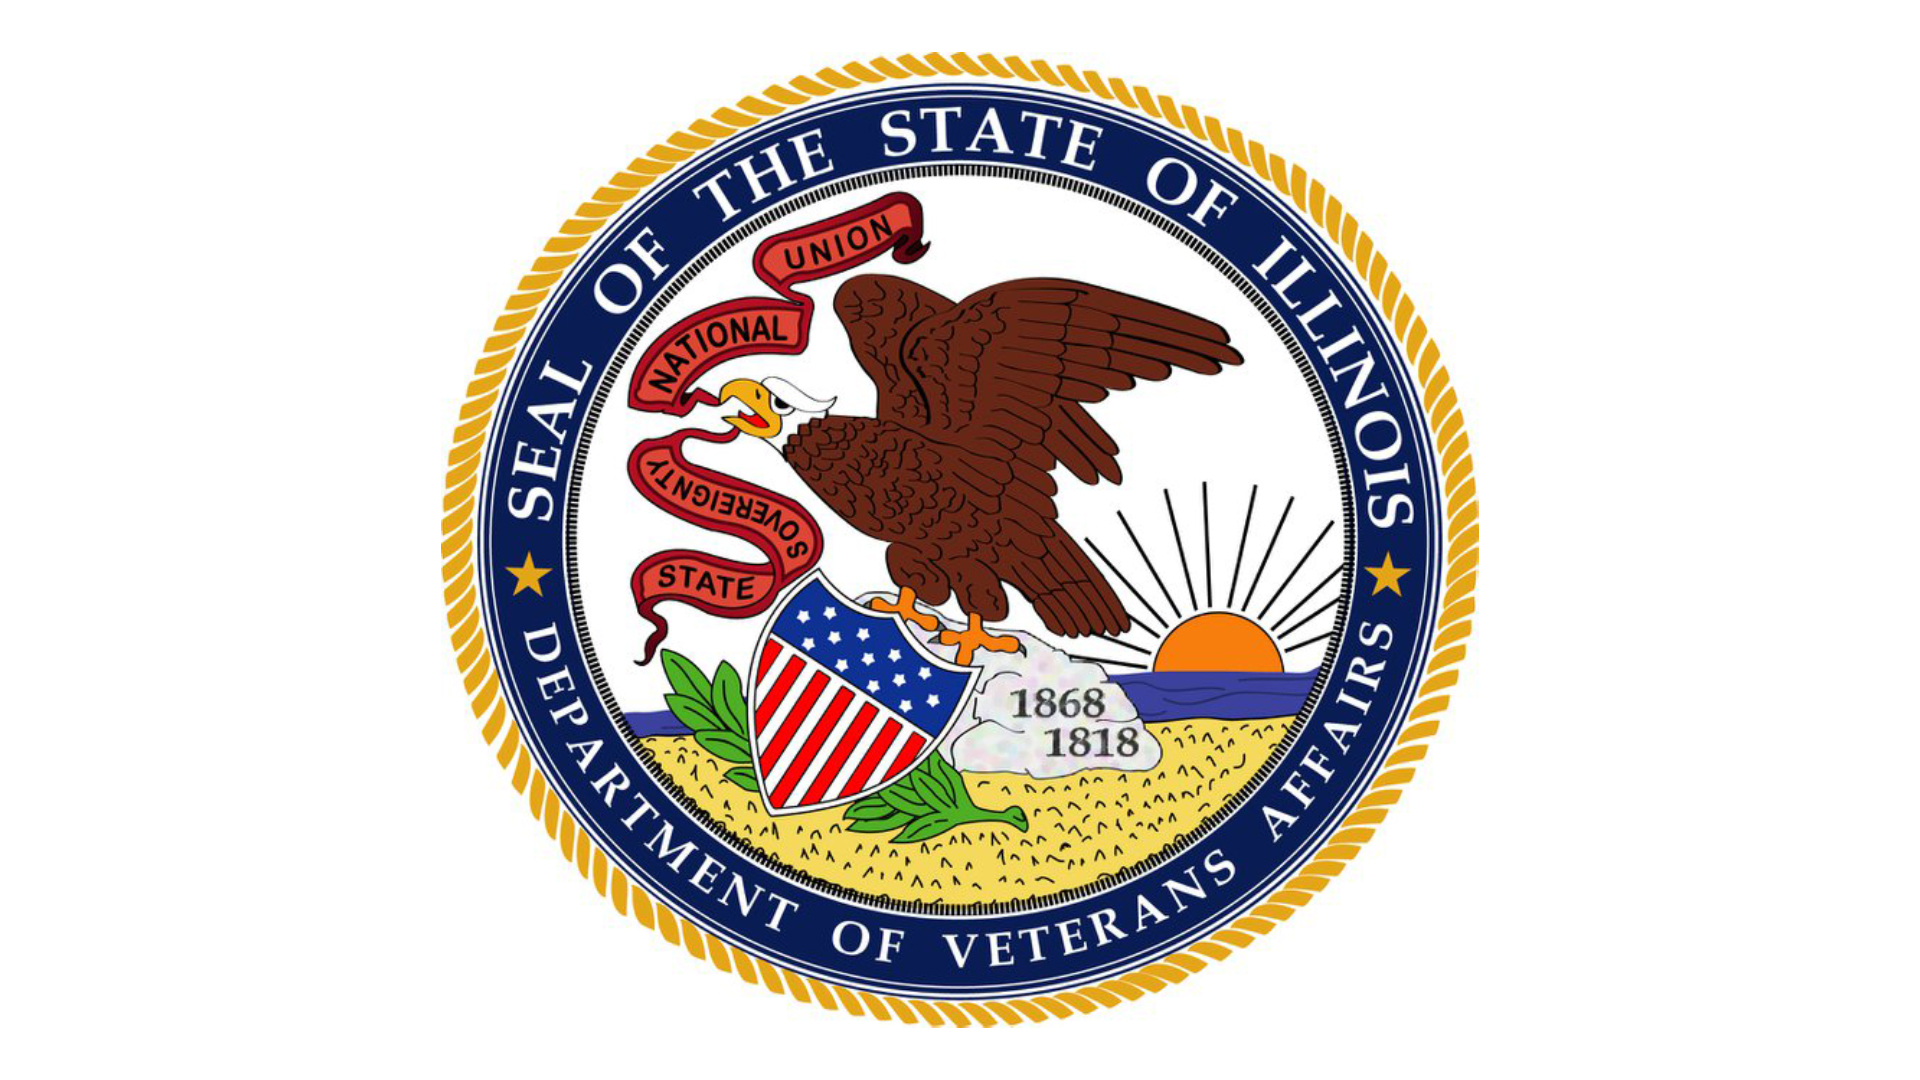 Veteran Owned Businesses Get New Logo From State